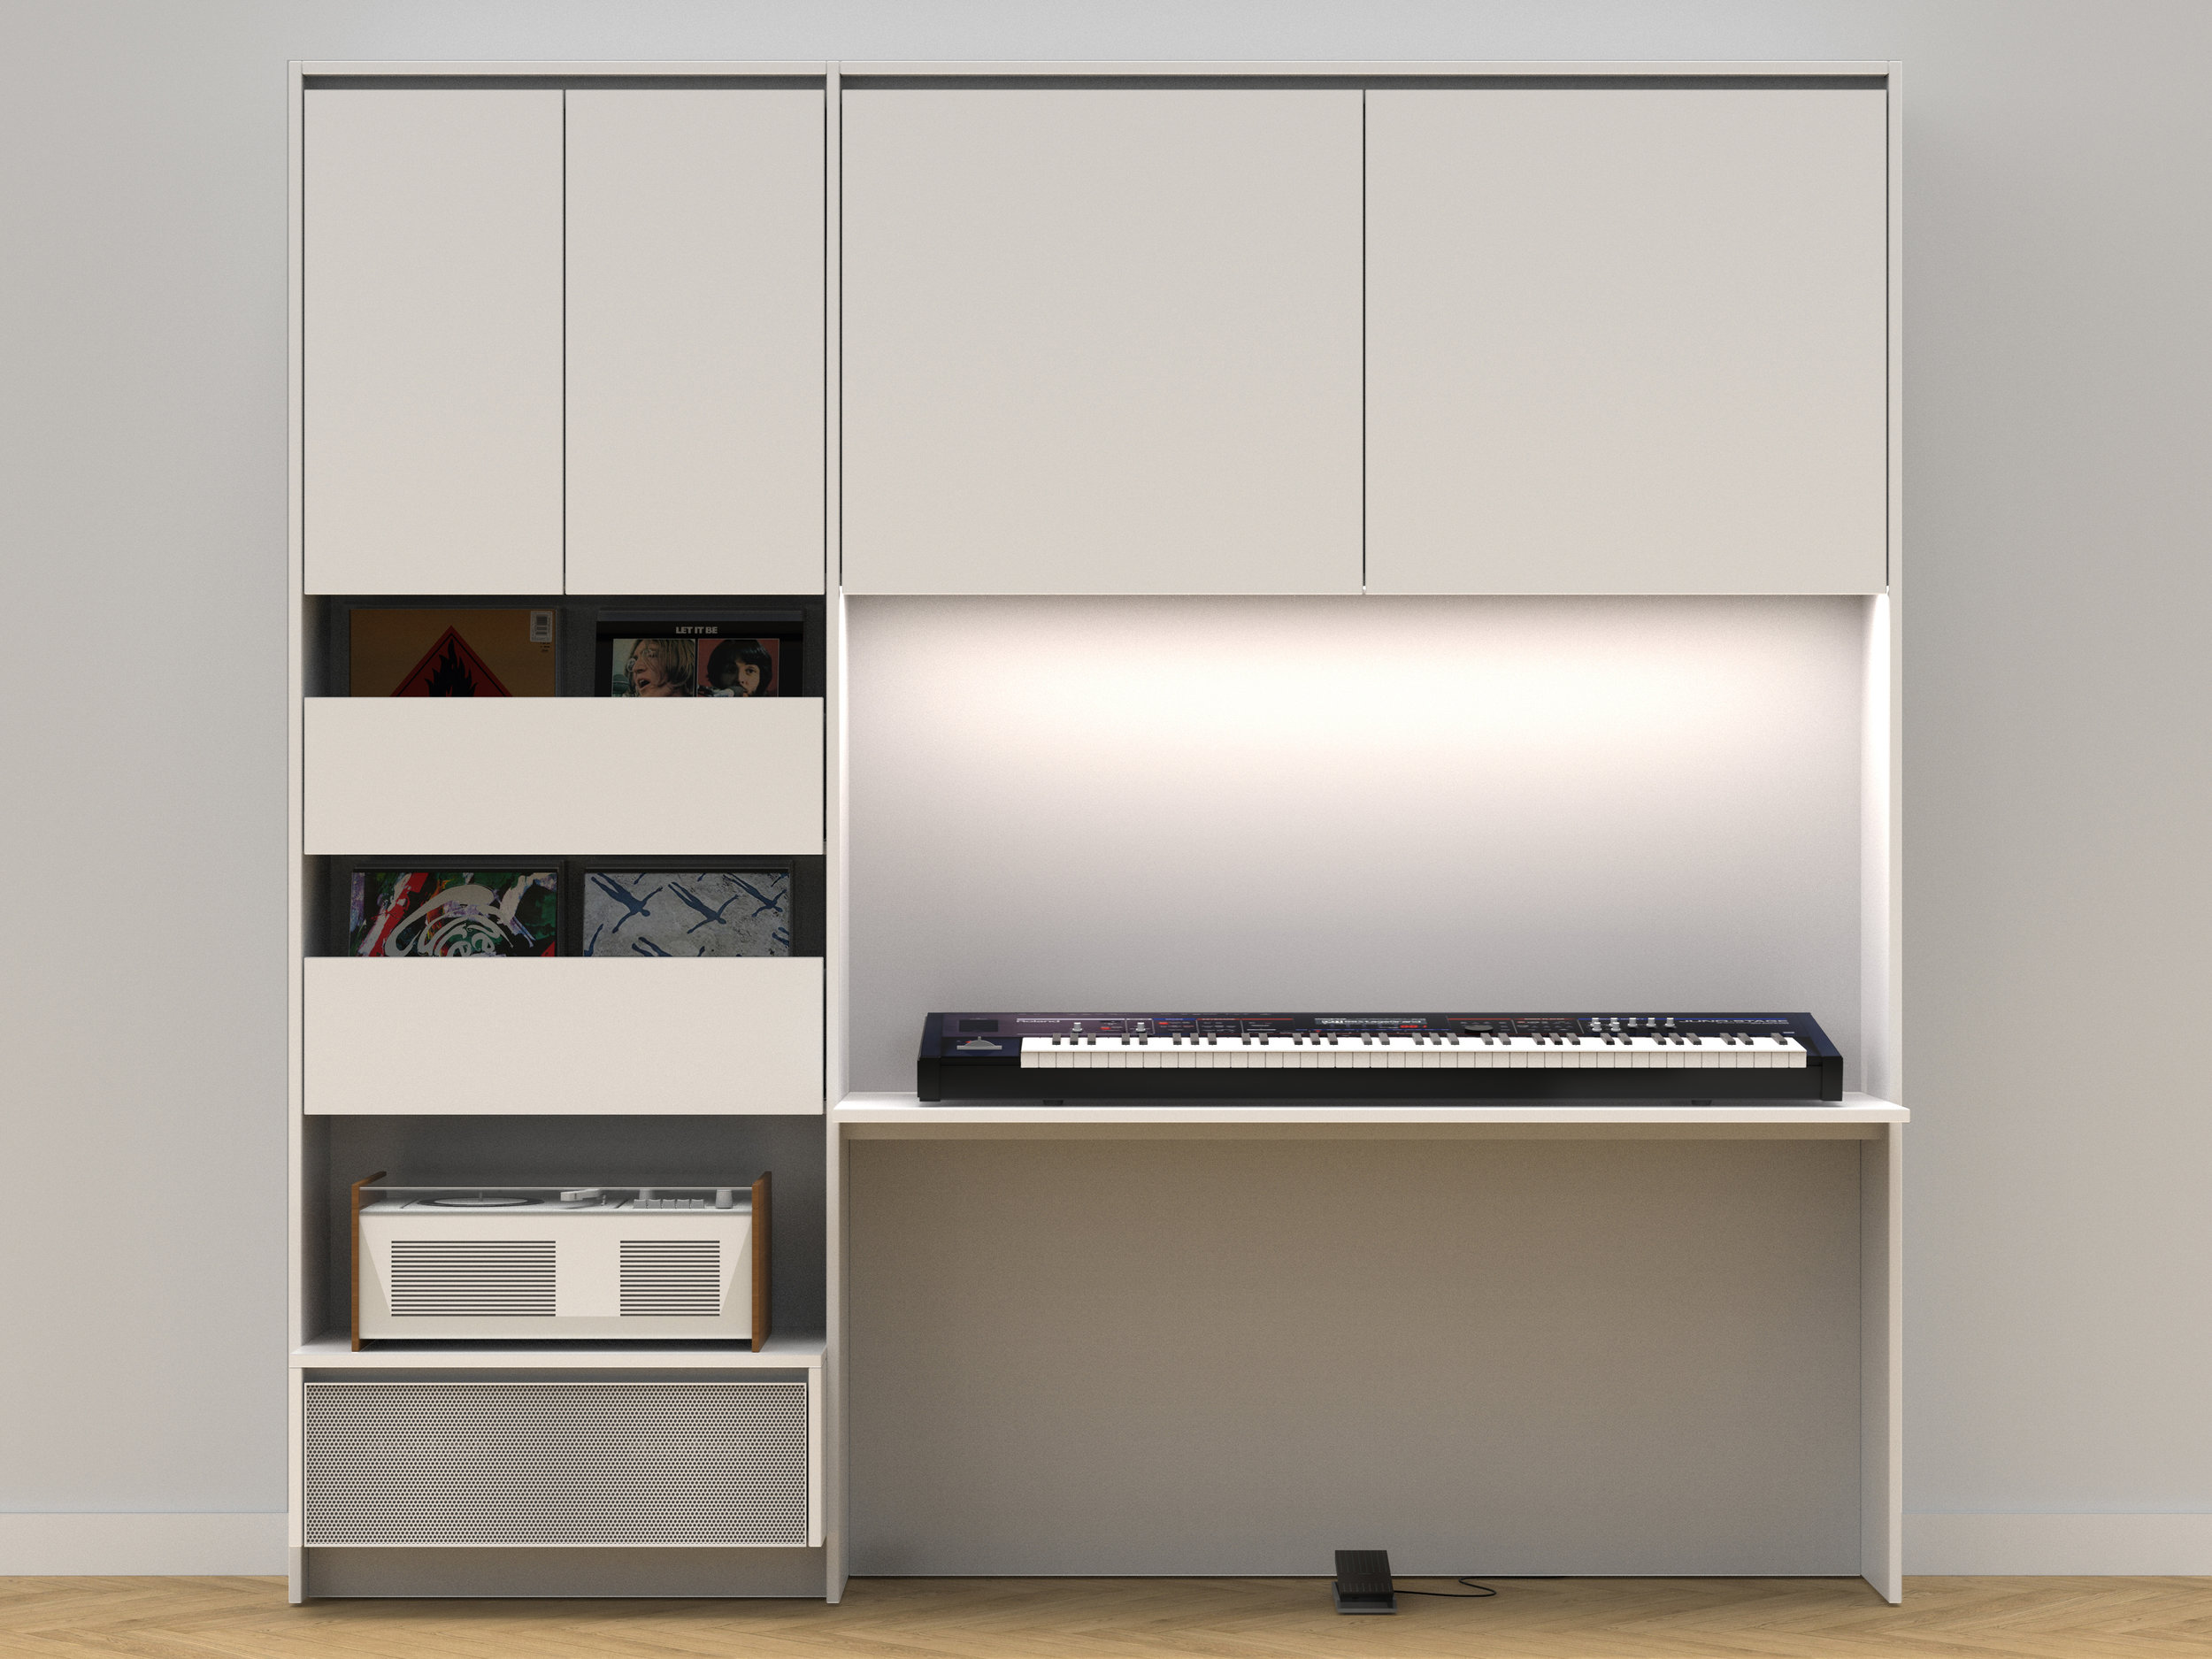 BUILT-IN MEDIA UNIT WALL CUSTOM CABINETRY DESK VANCOUVER ANTHILL STUDIO NEXUS